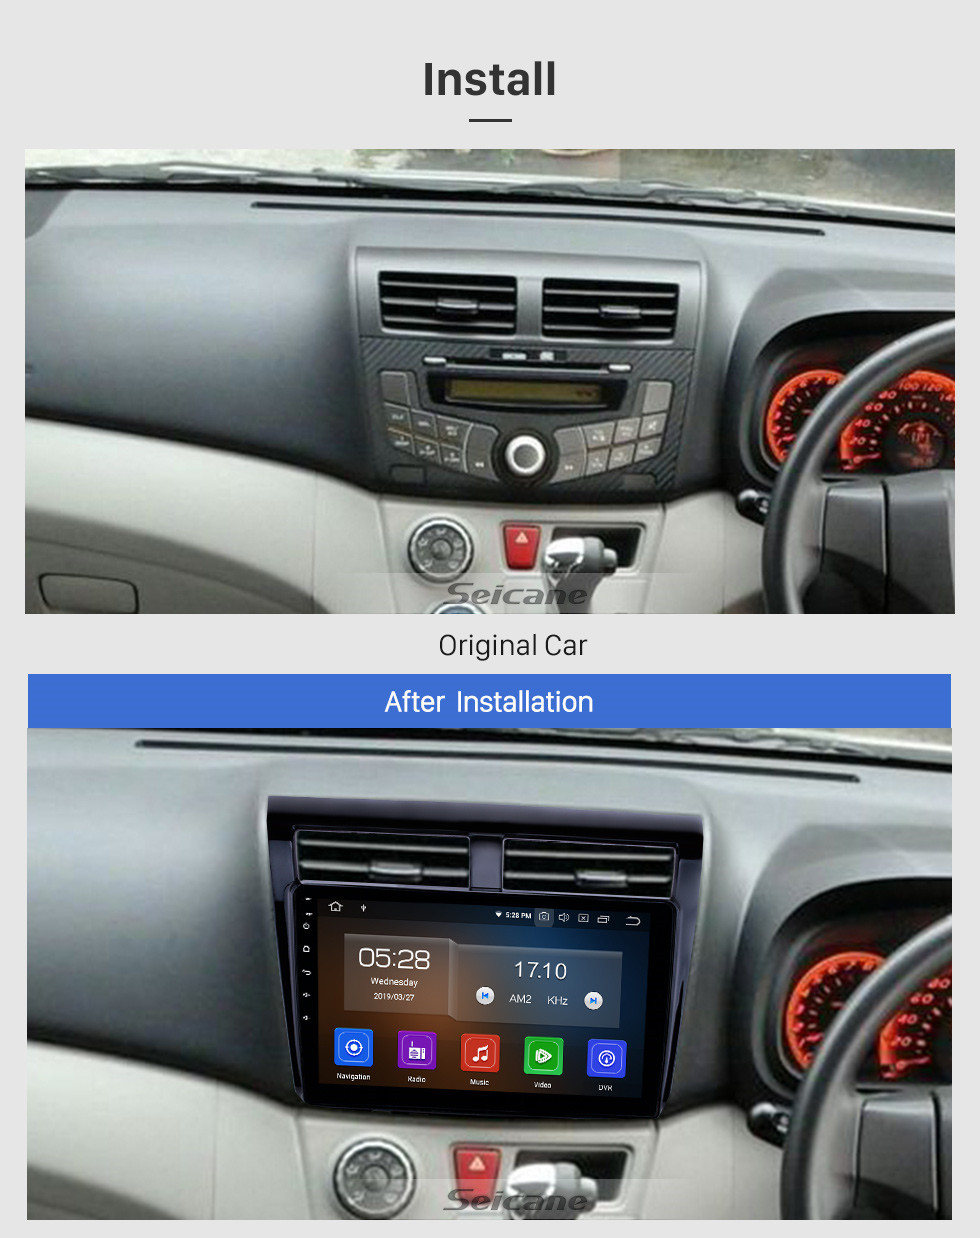 Seicane 10.1 inch Android 10.0 Radio for 2012 Proton Myvi Bluetooth Wifi HD Touchscreen GPS Navigation Carplay USB support DVR OBD2 Rearview camera